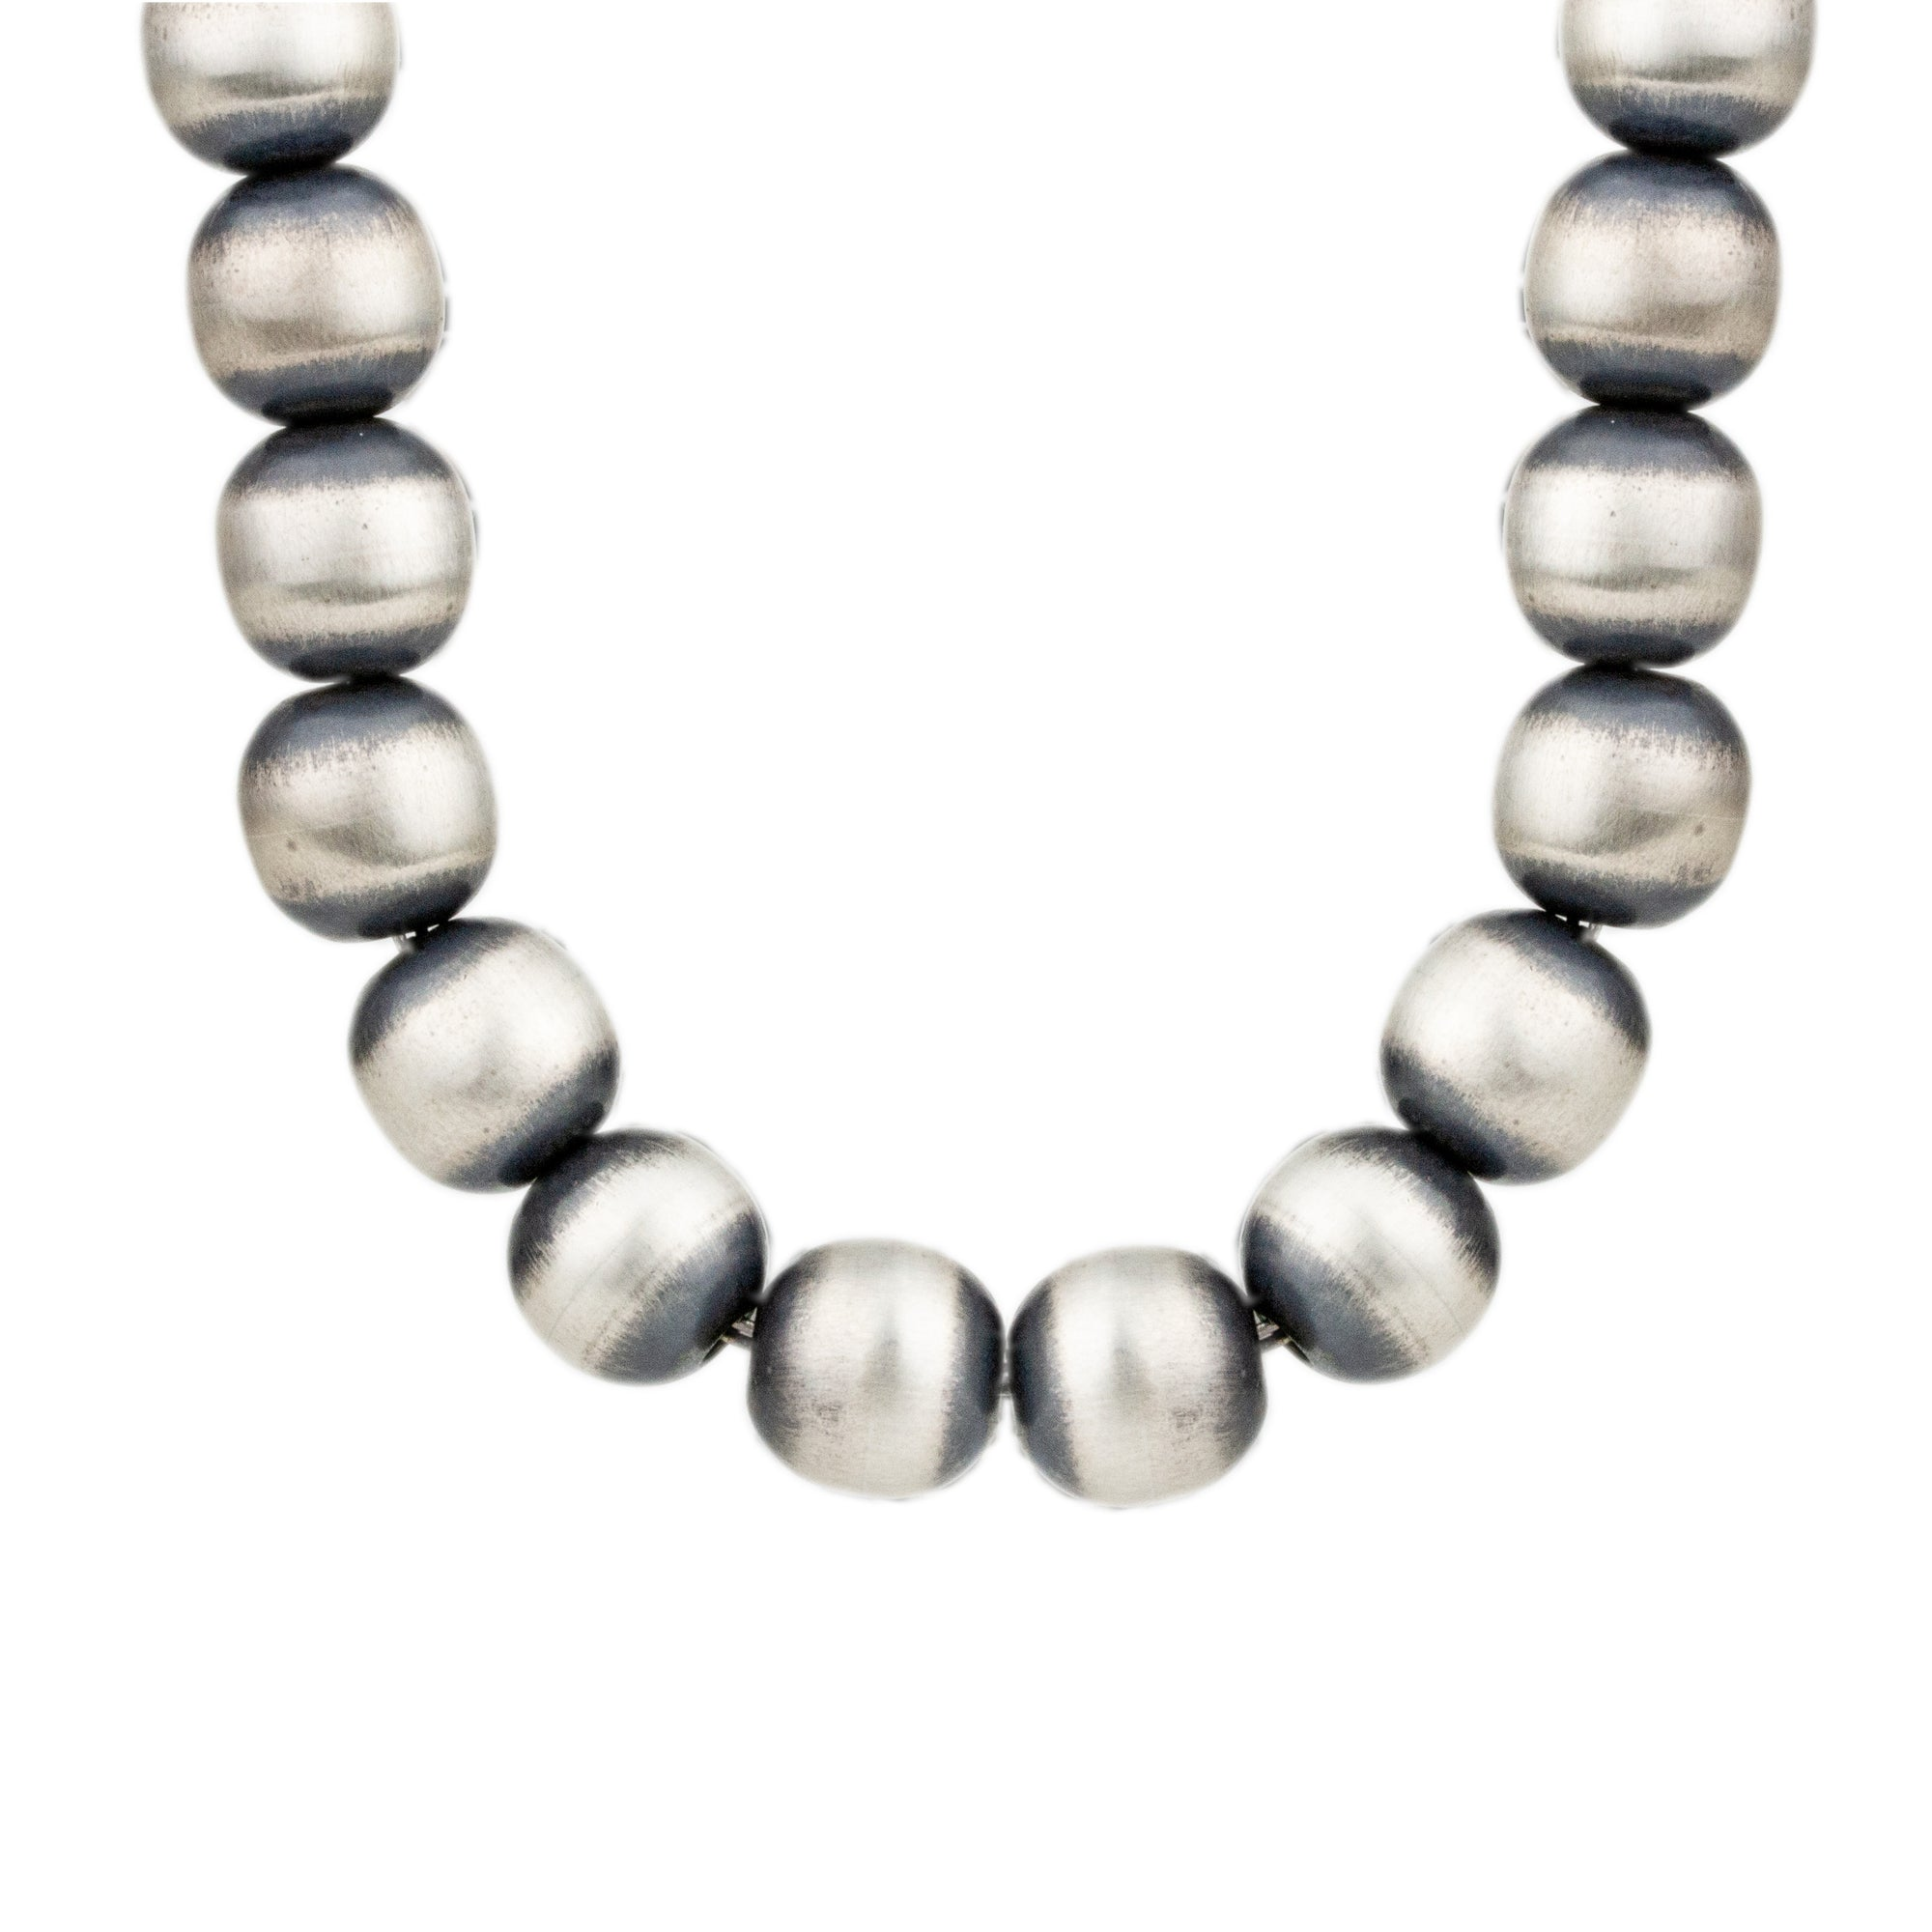 10mm Navajo Pearl Necklace